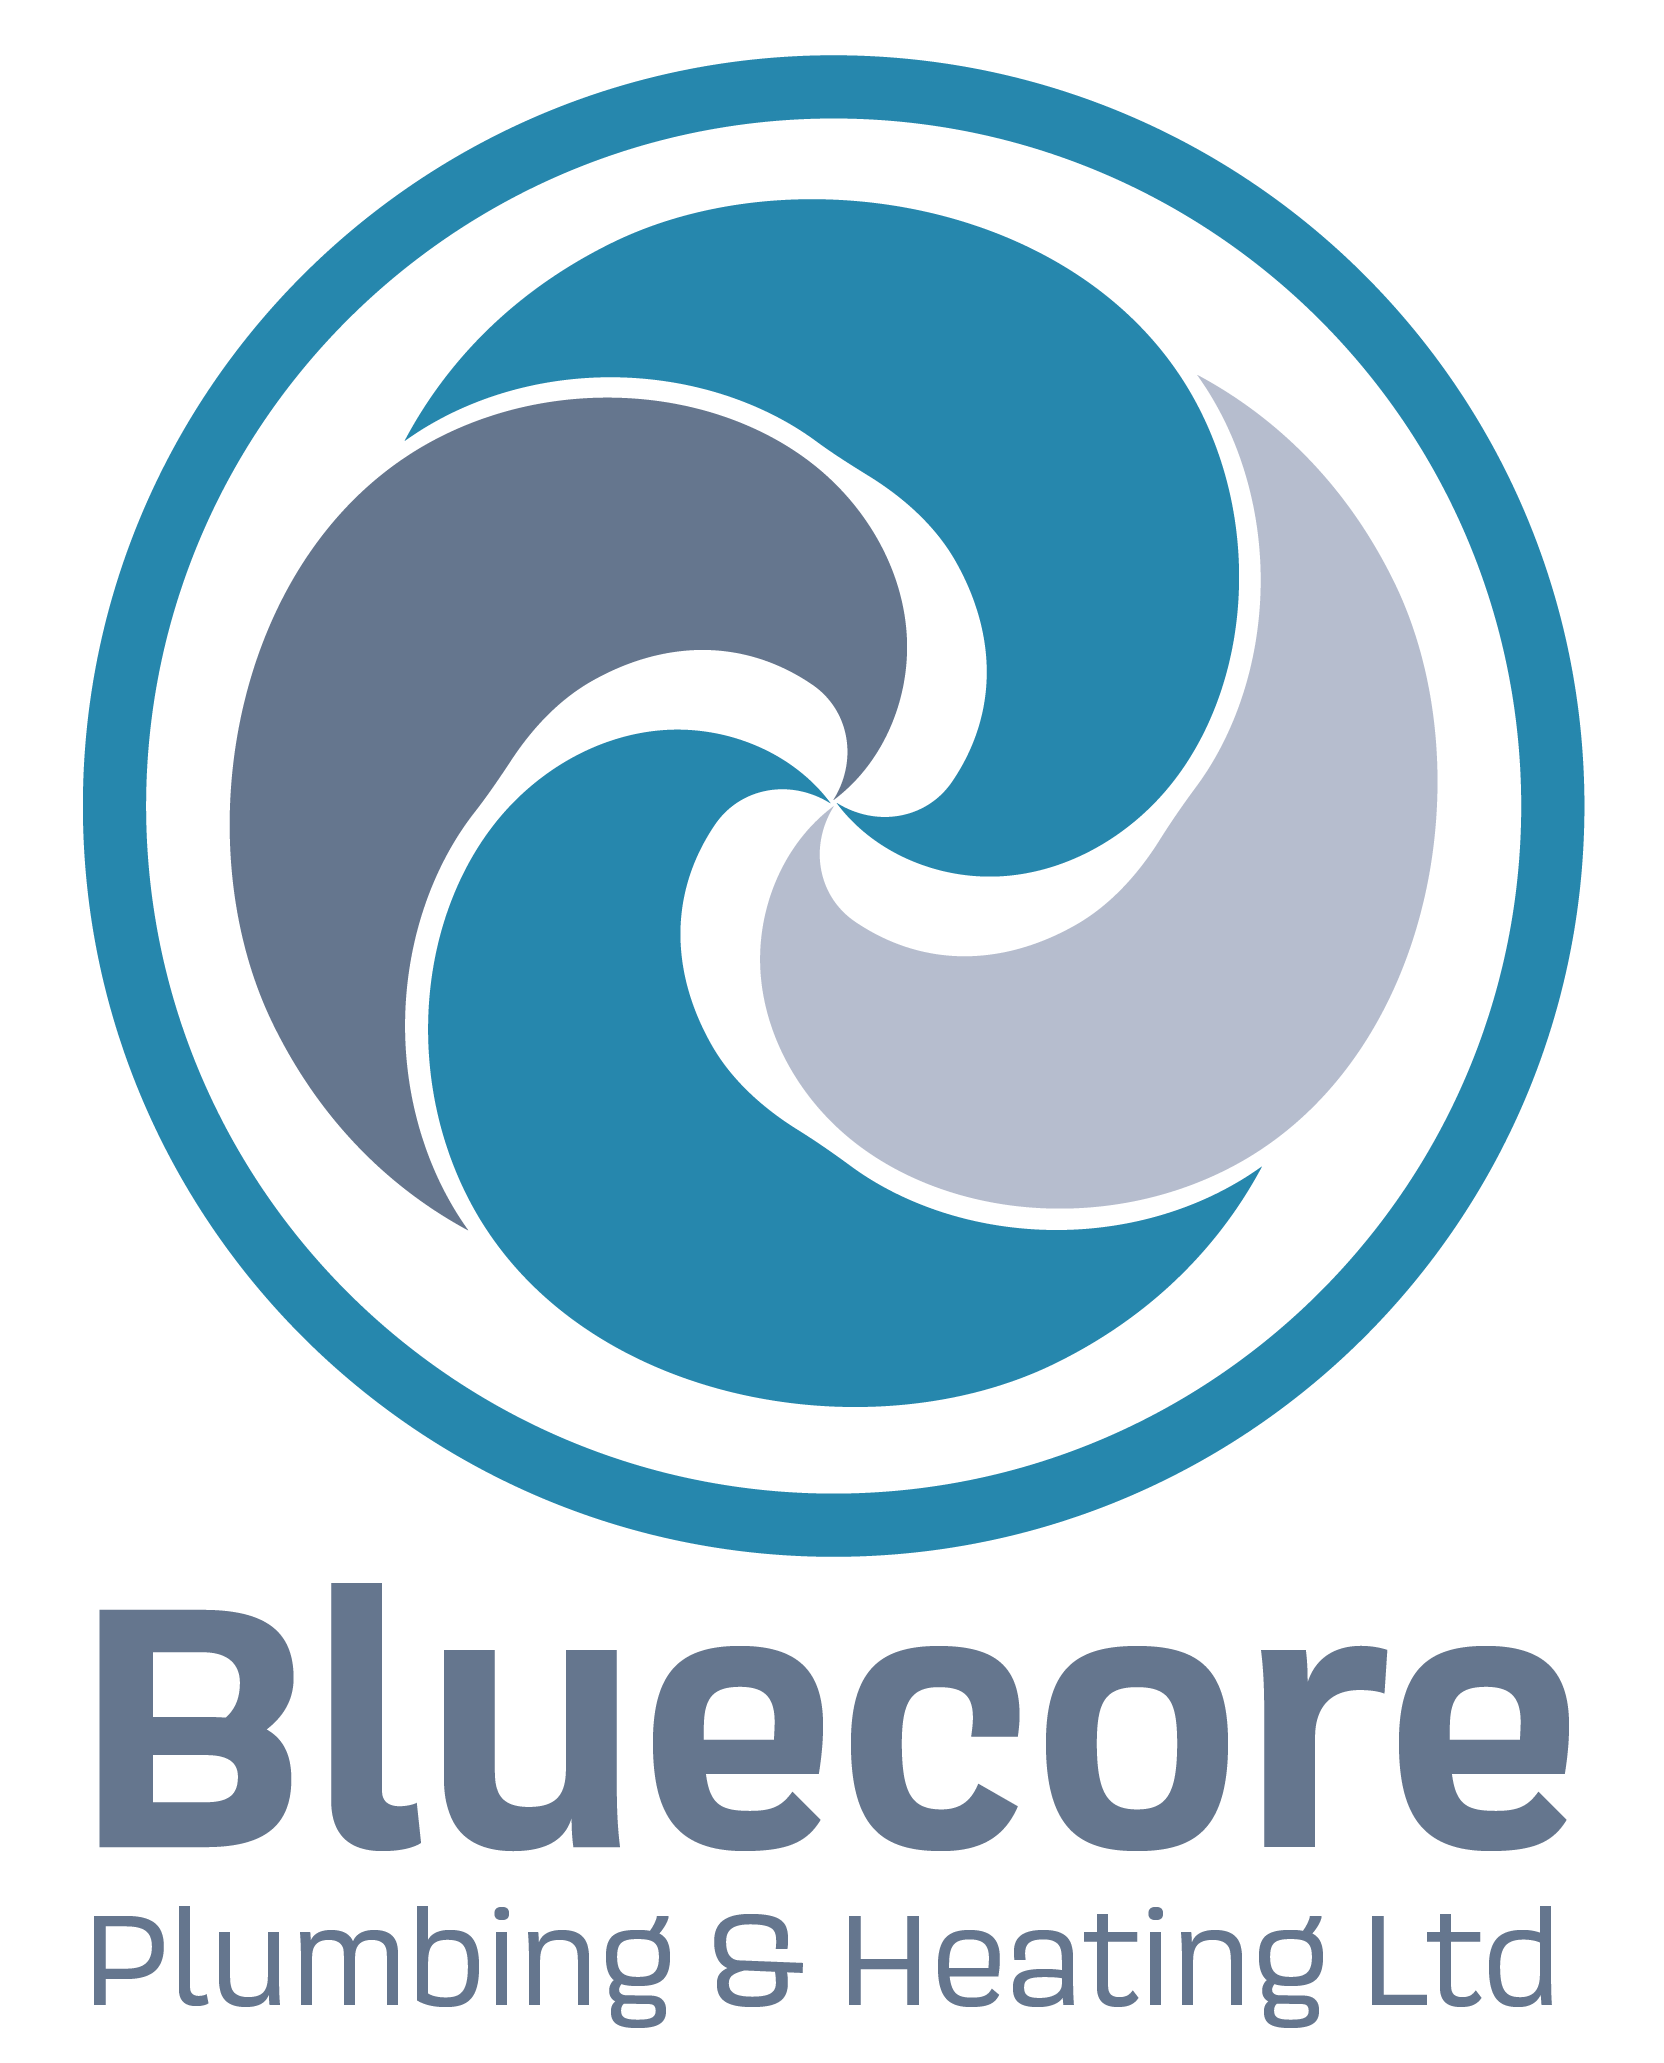 Bluecore Plumbing & Heating